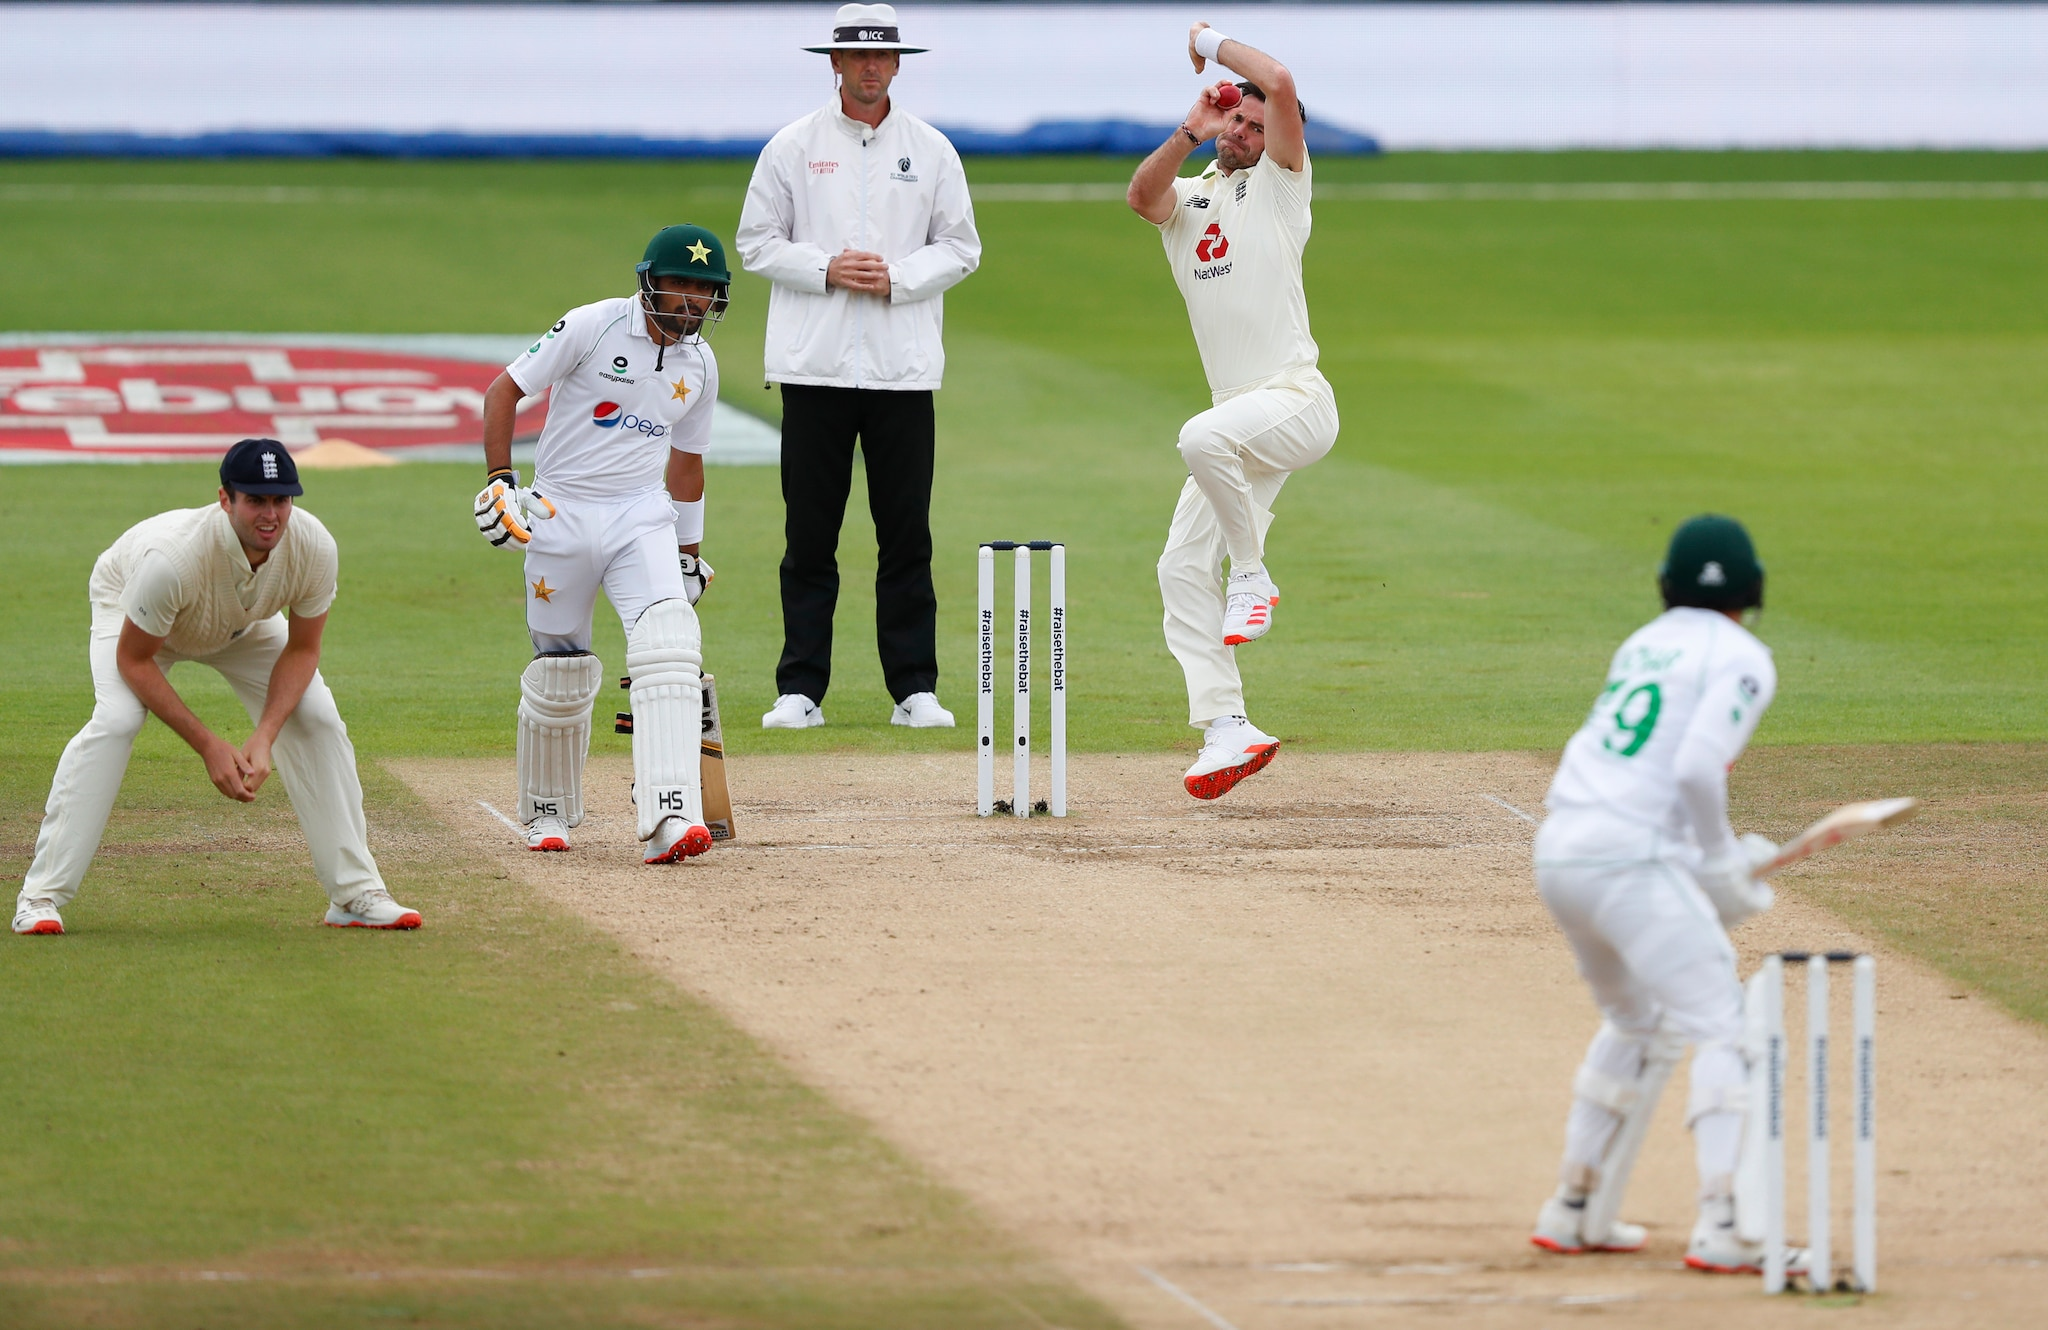 In Pics, James Anderson Takes Wicket Number 600 as England-Pakistan Play Out Draw